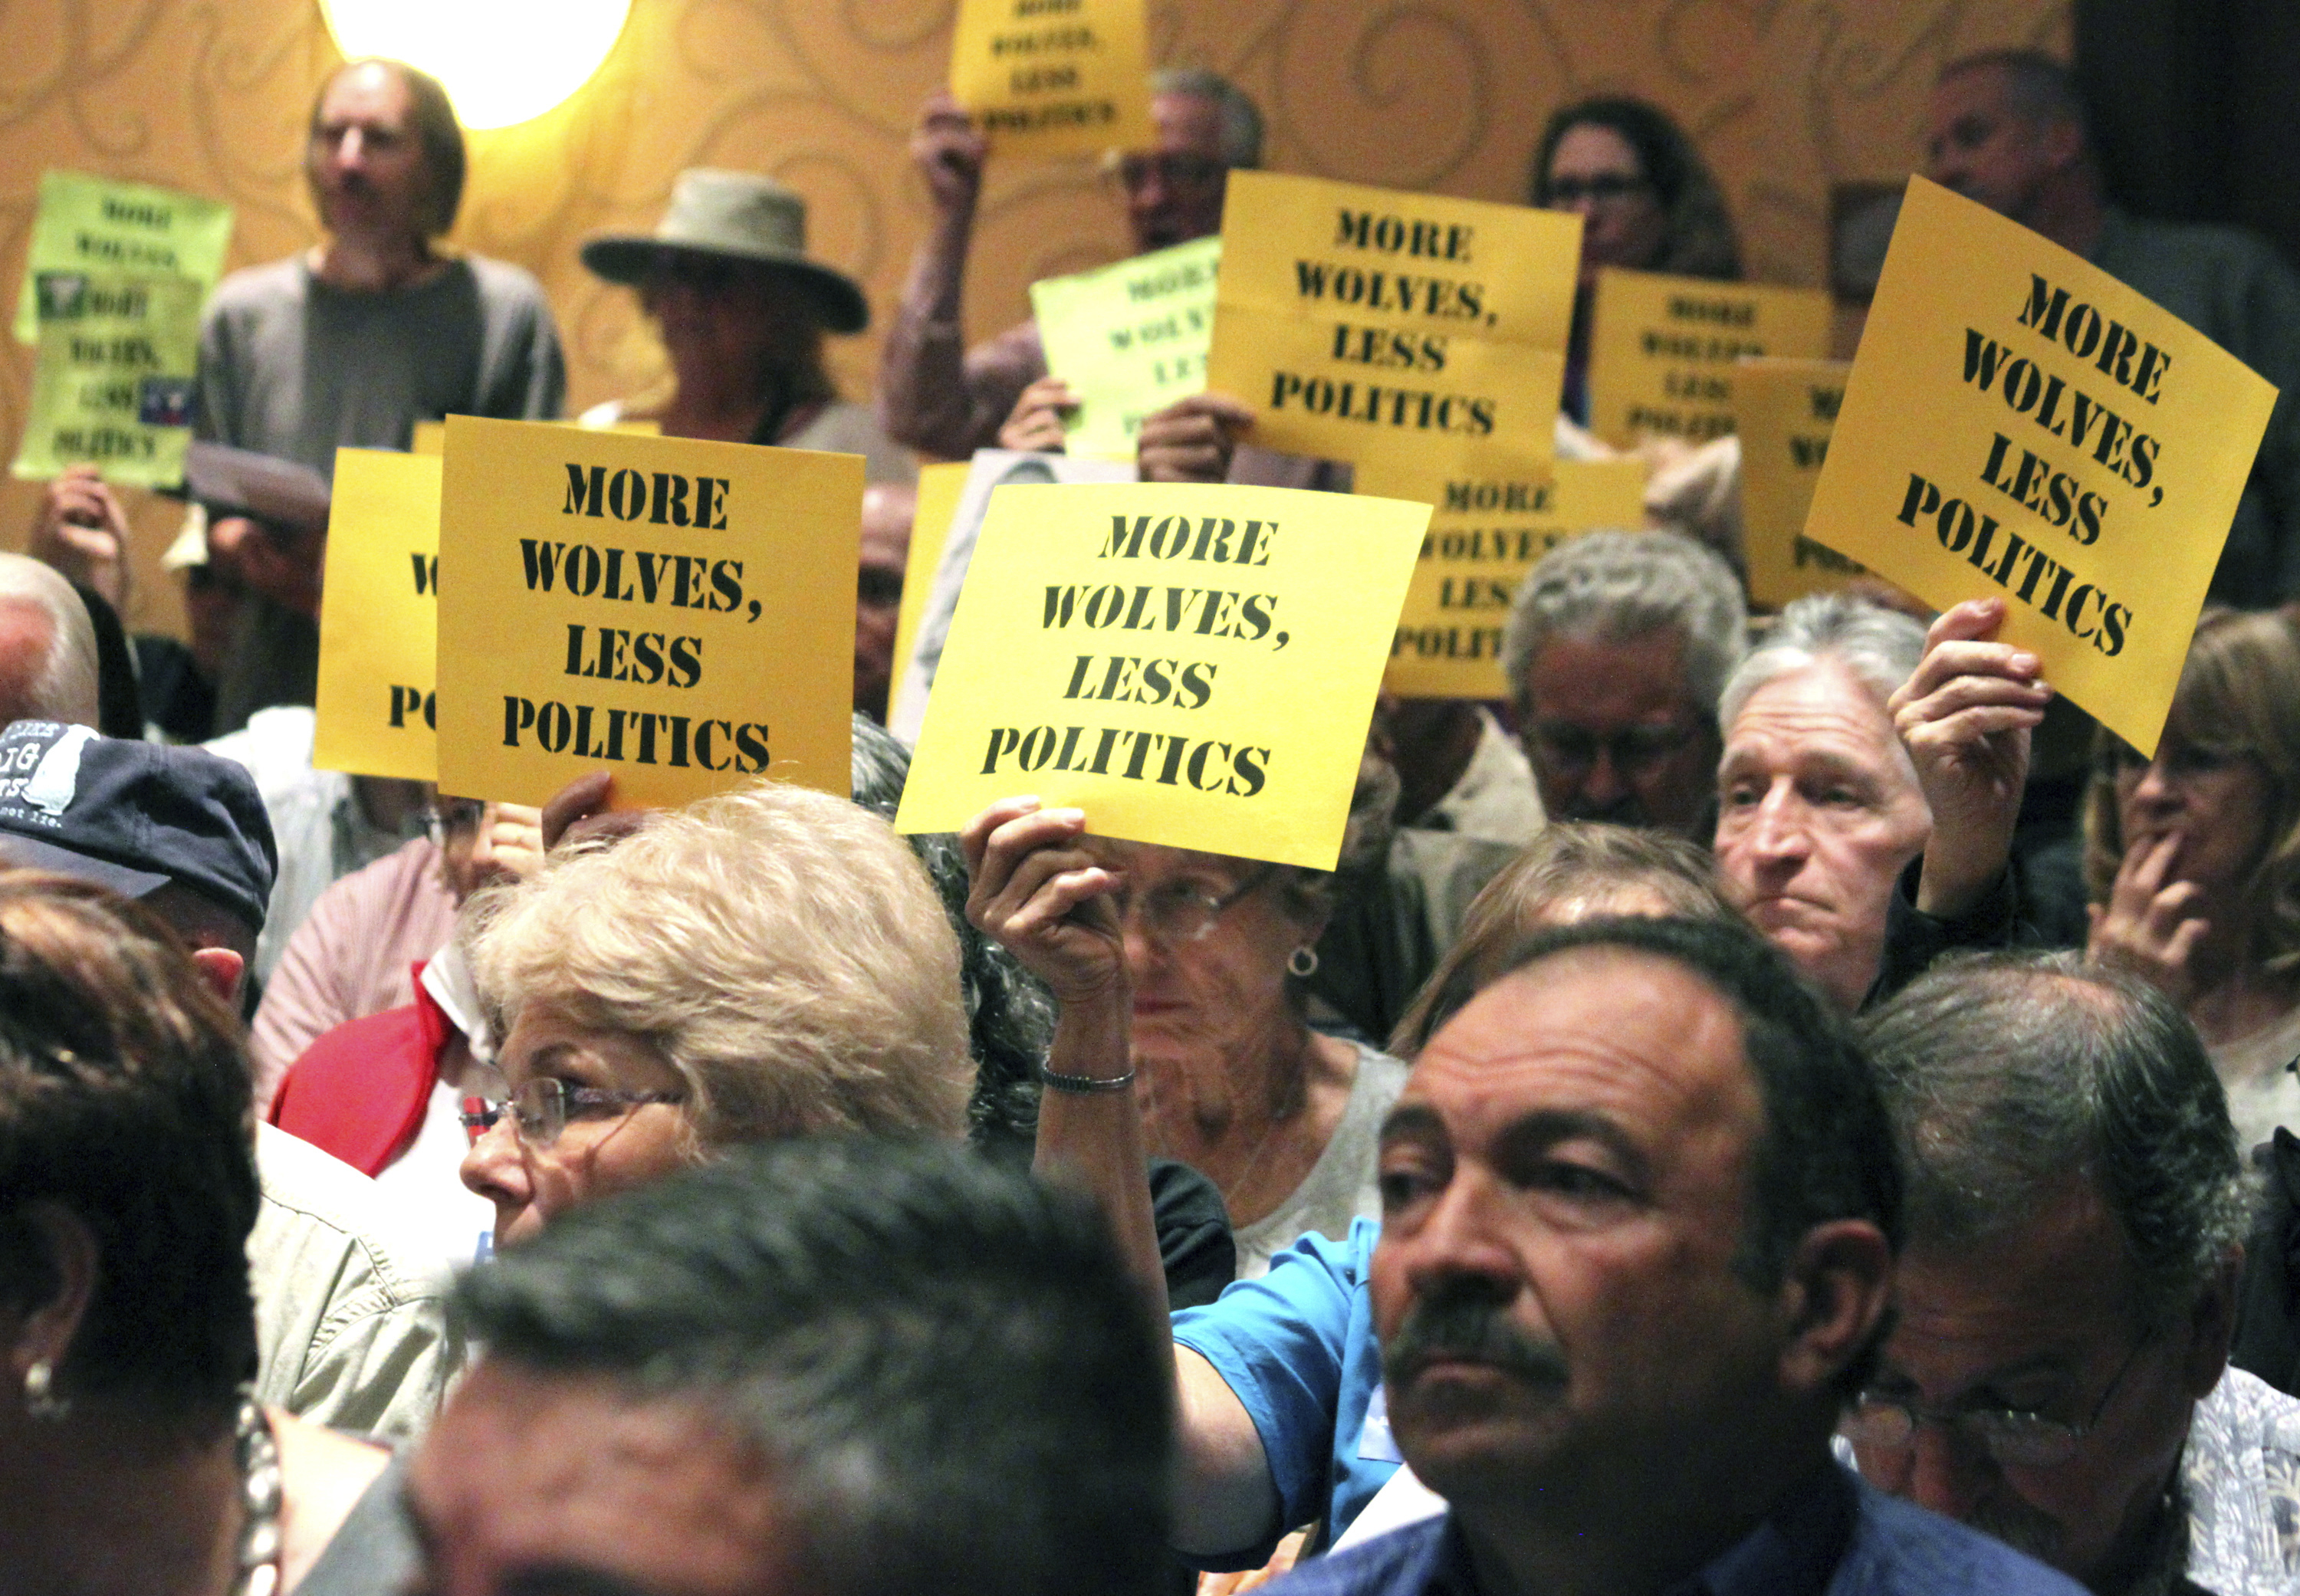 FILE - People hold signs in support of the Mexican gray wolf during a meeting of the New Mexico Game Commission in Albuquerque, New Mexico, Sept. 29, 2015.